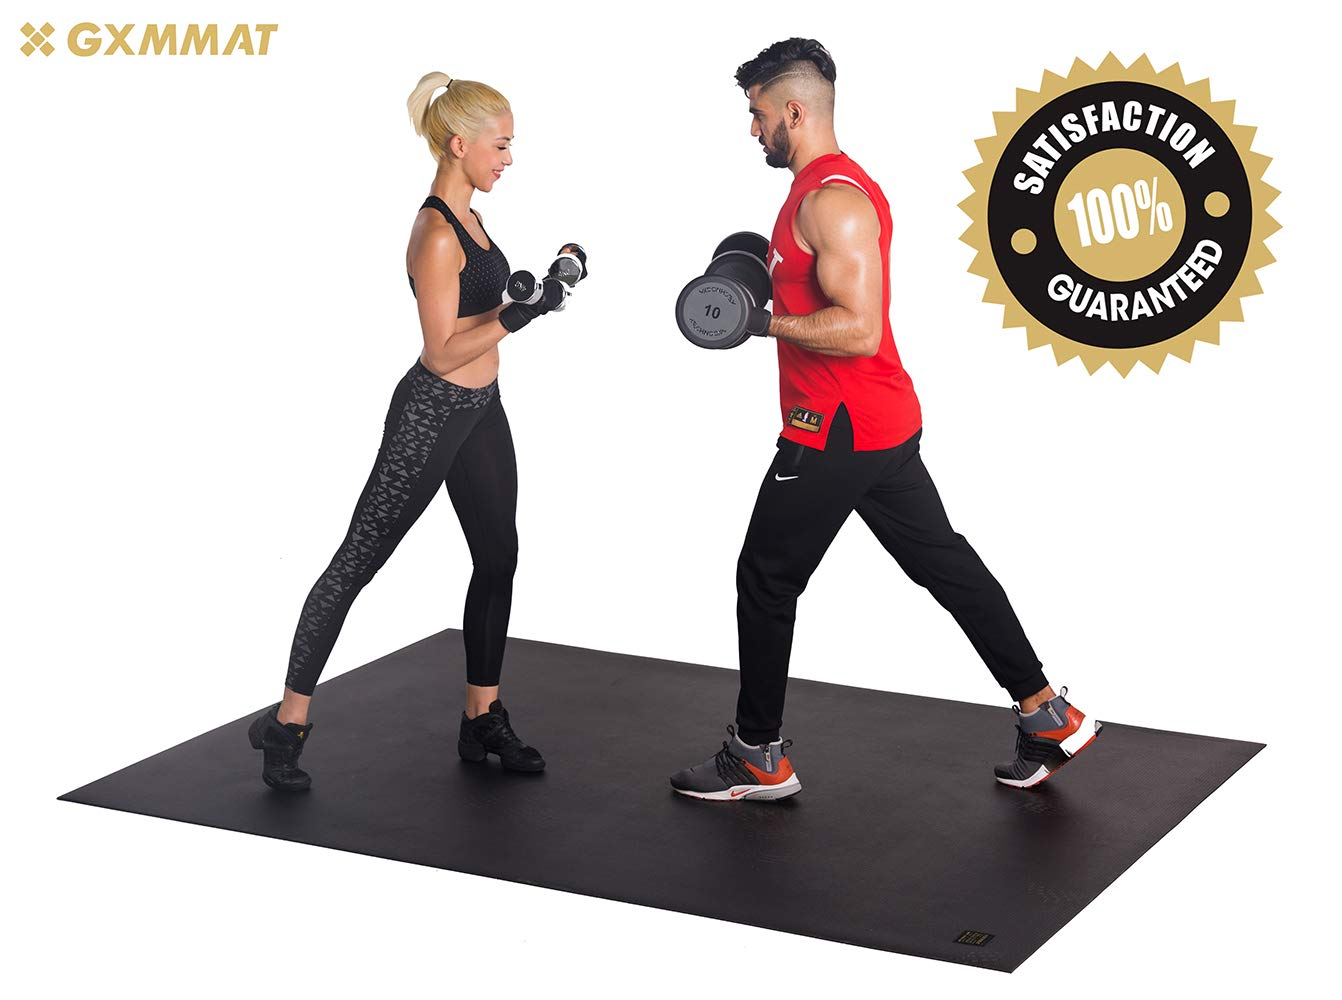 Gxmmat Extra Large Exercise Mat 6'x8'x7mm for Home Gym Flooring, Ultra Durable Cardio Workout Mats Non-Slip,Non-Toxic, Ideal for MMA, Plyo, Jump, All-Purpose Fitness by Gxmmat (Image #9)